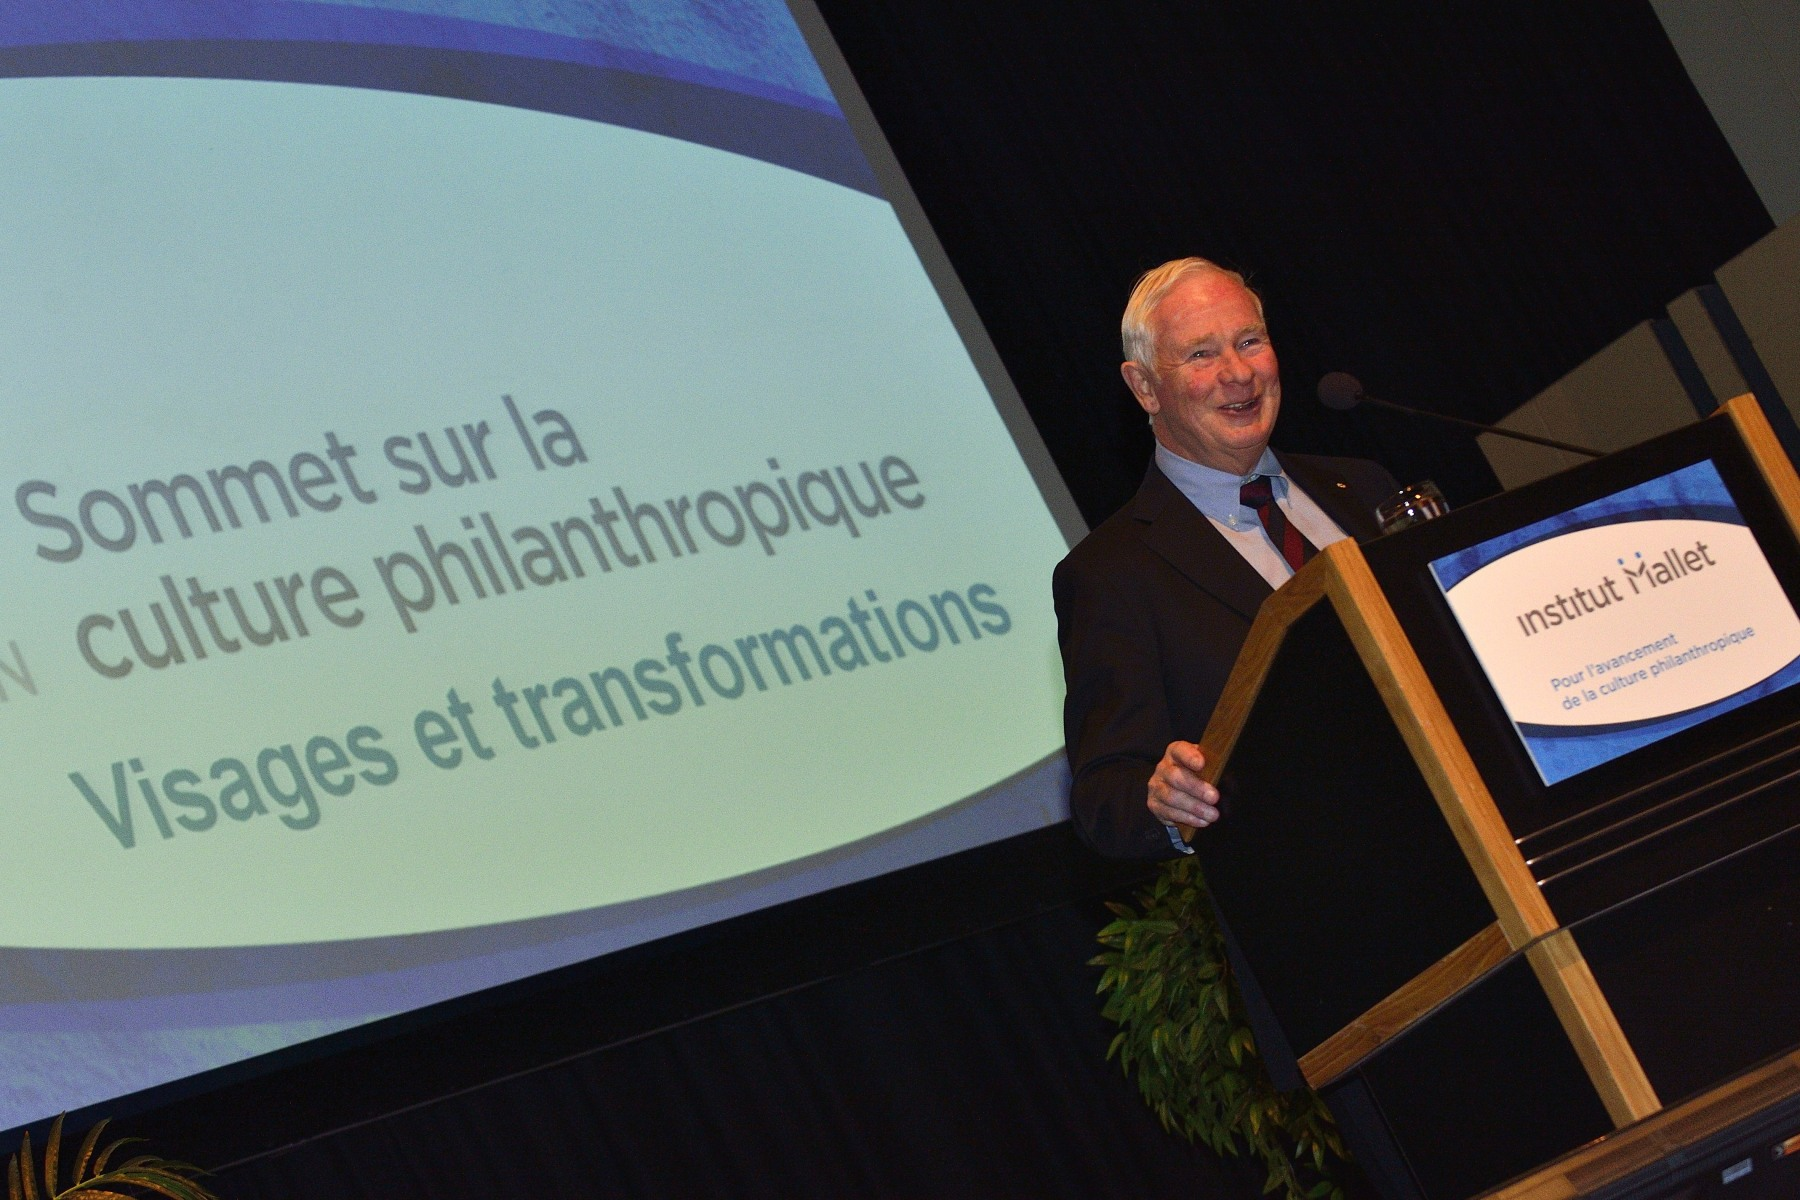 His Excellency the Right Honourable David Johnston, Governor General of Canada, delivered an address at the Sommet sur la culture philanthropique [Philanthropic Culture Summit] on Wednesday, November 13, 2013. At the breakfast meeting, he shared his vision of philanthropy in Canada and talked about the importance of giving, to managers, administrators, practitioners and people actively involved in a variety of philanthropic culture practices.